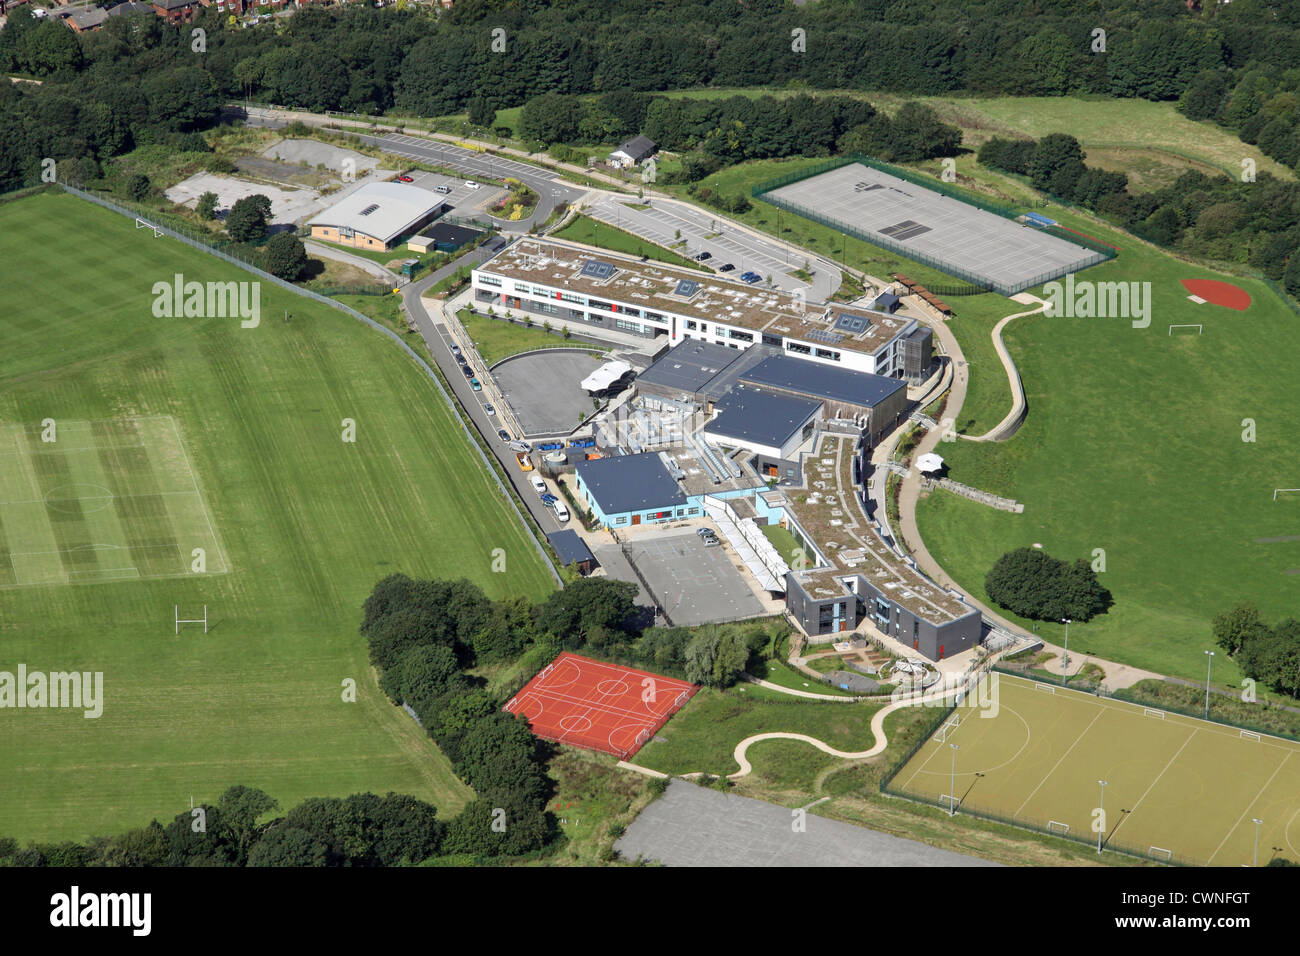 aerial view of Newfield Secondary School, Sheffield - Stock Image